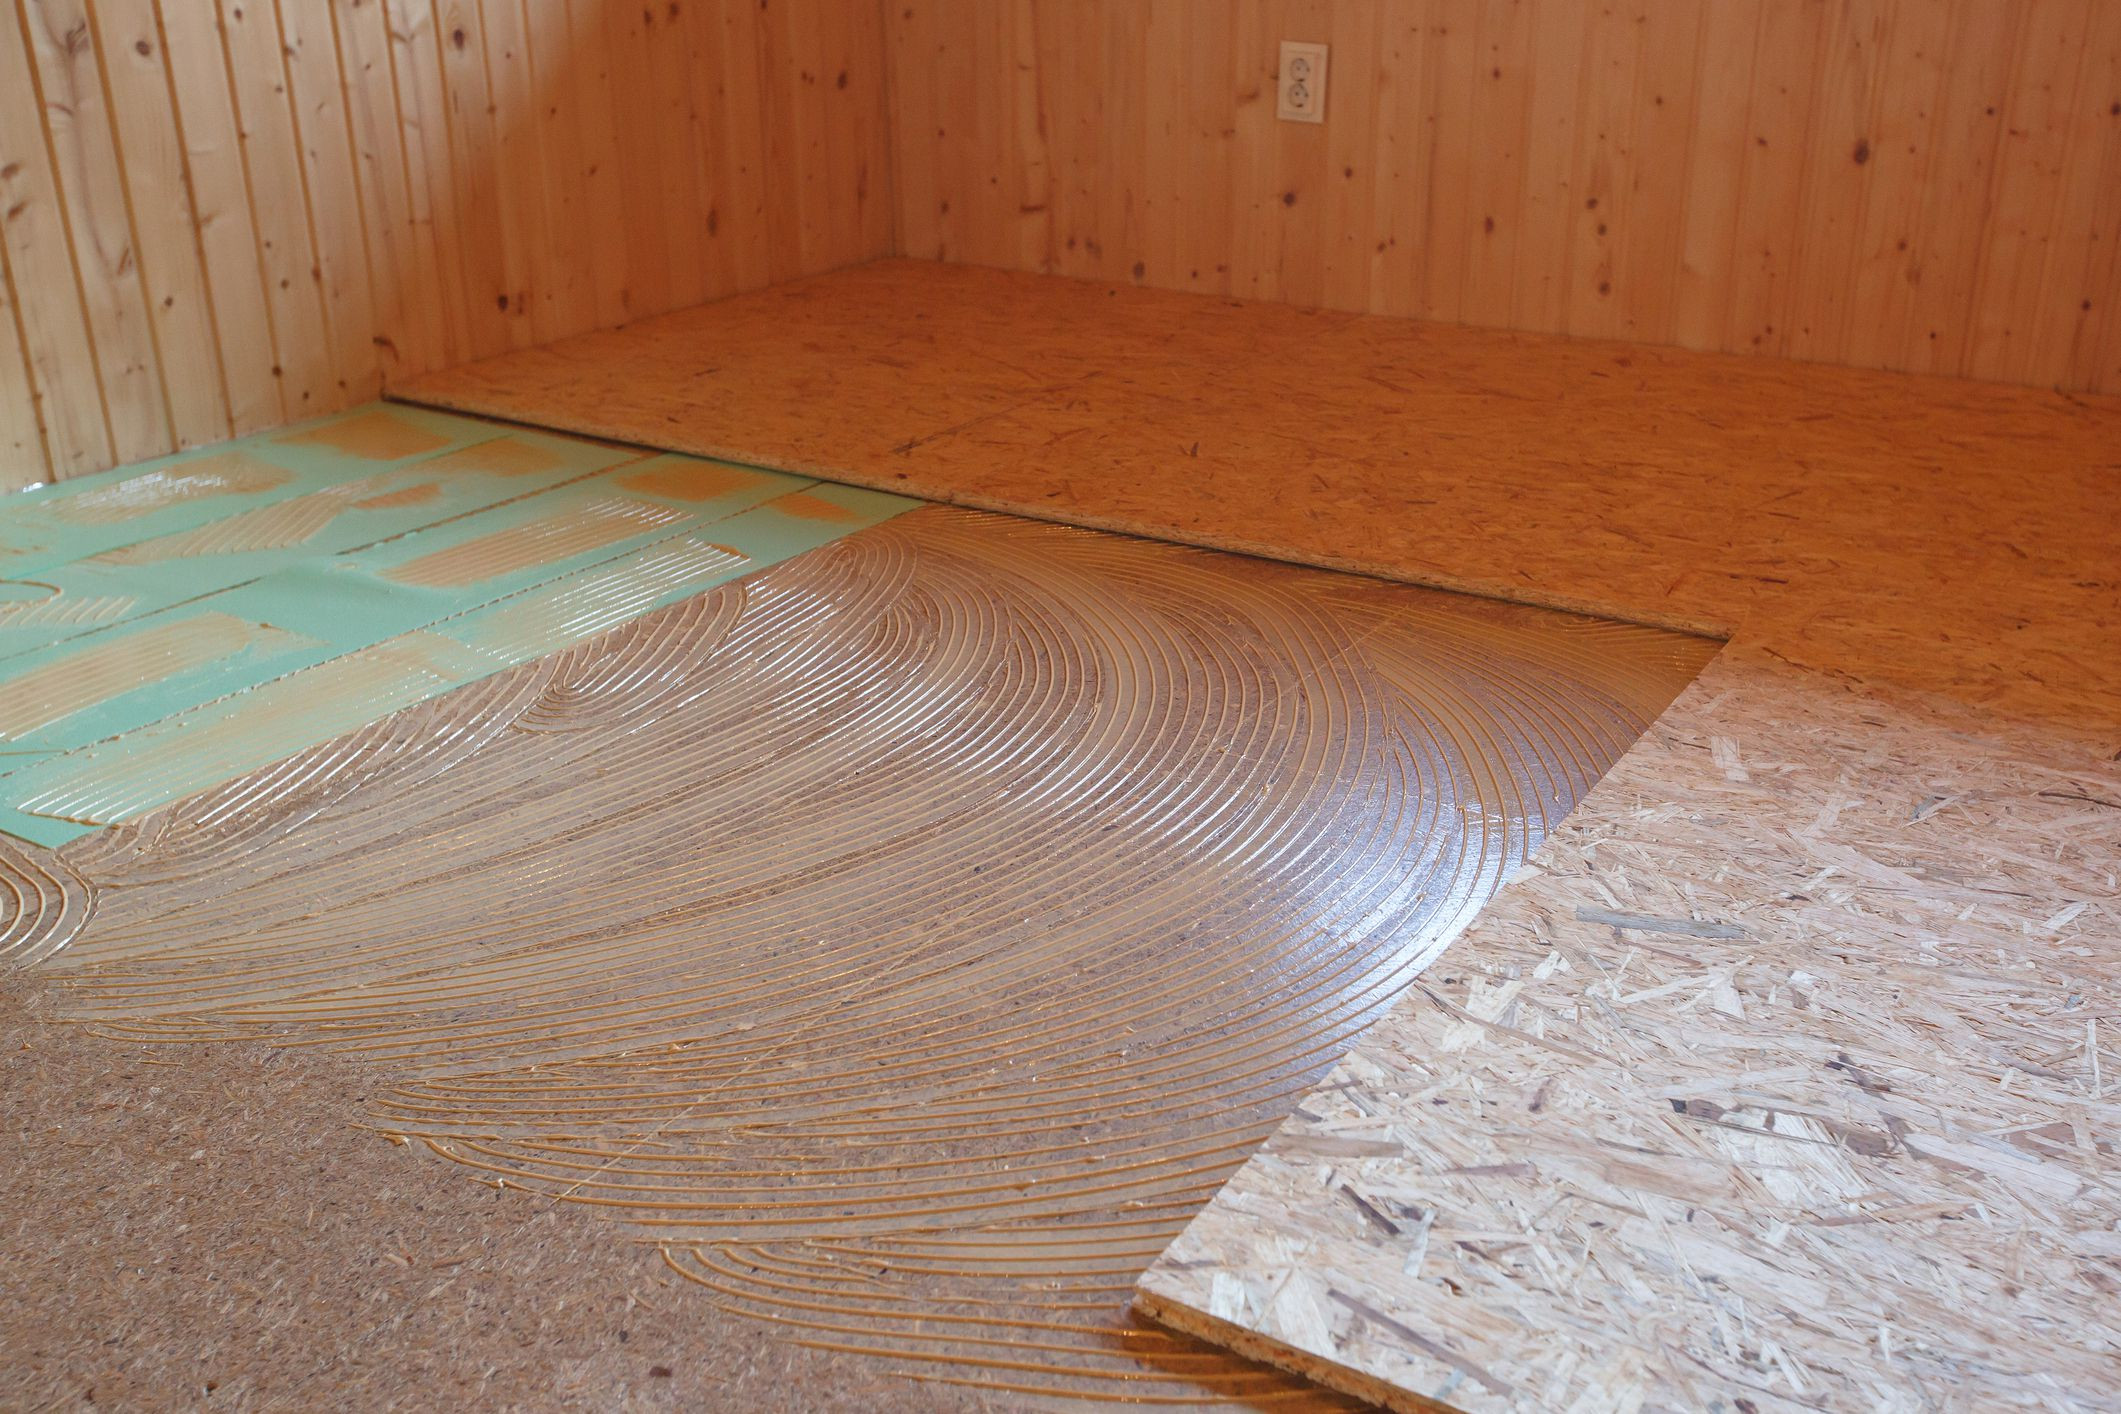 how to lay engineered hardwood flooring over concrete of types of subfloor materials in construction projects with regard to gettyimages 892047030 5af5f46fc064710036eebd22